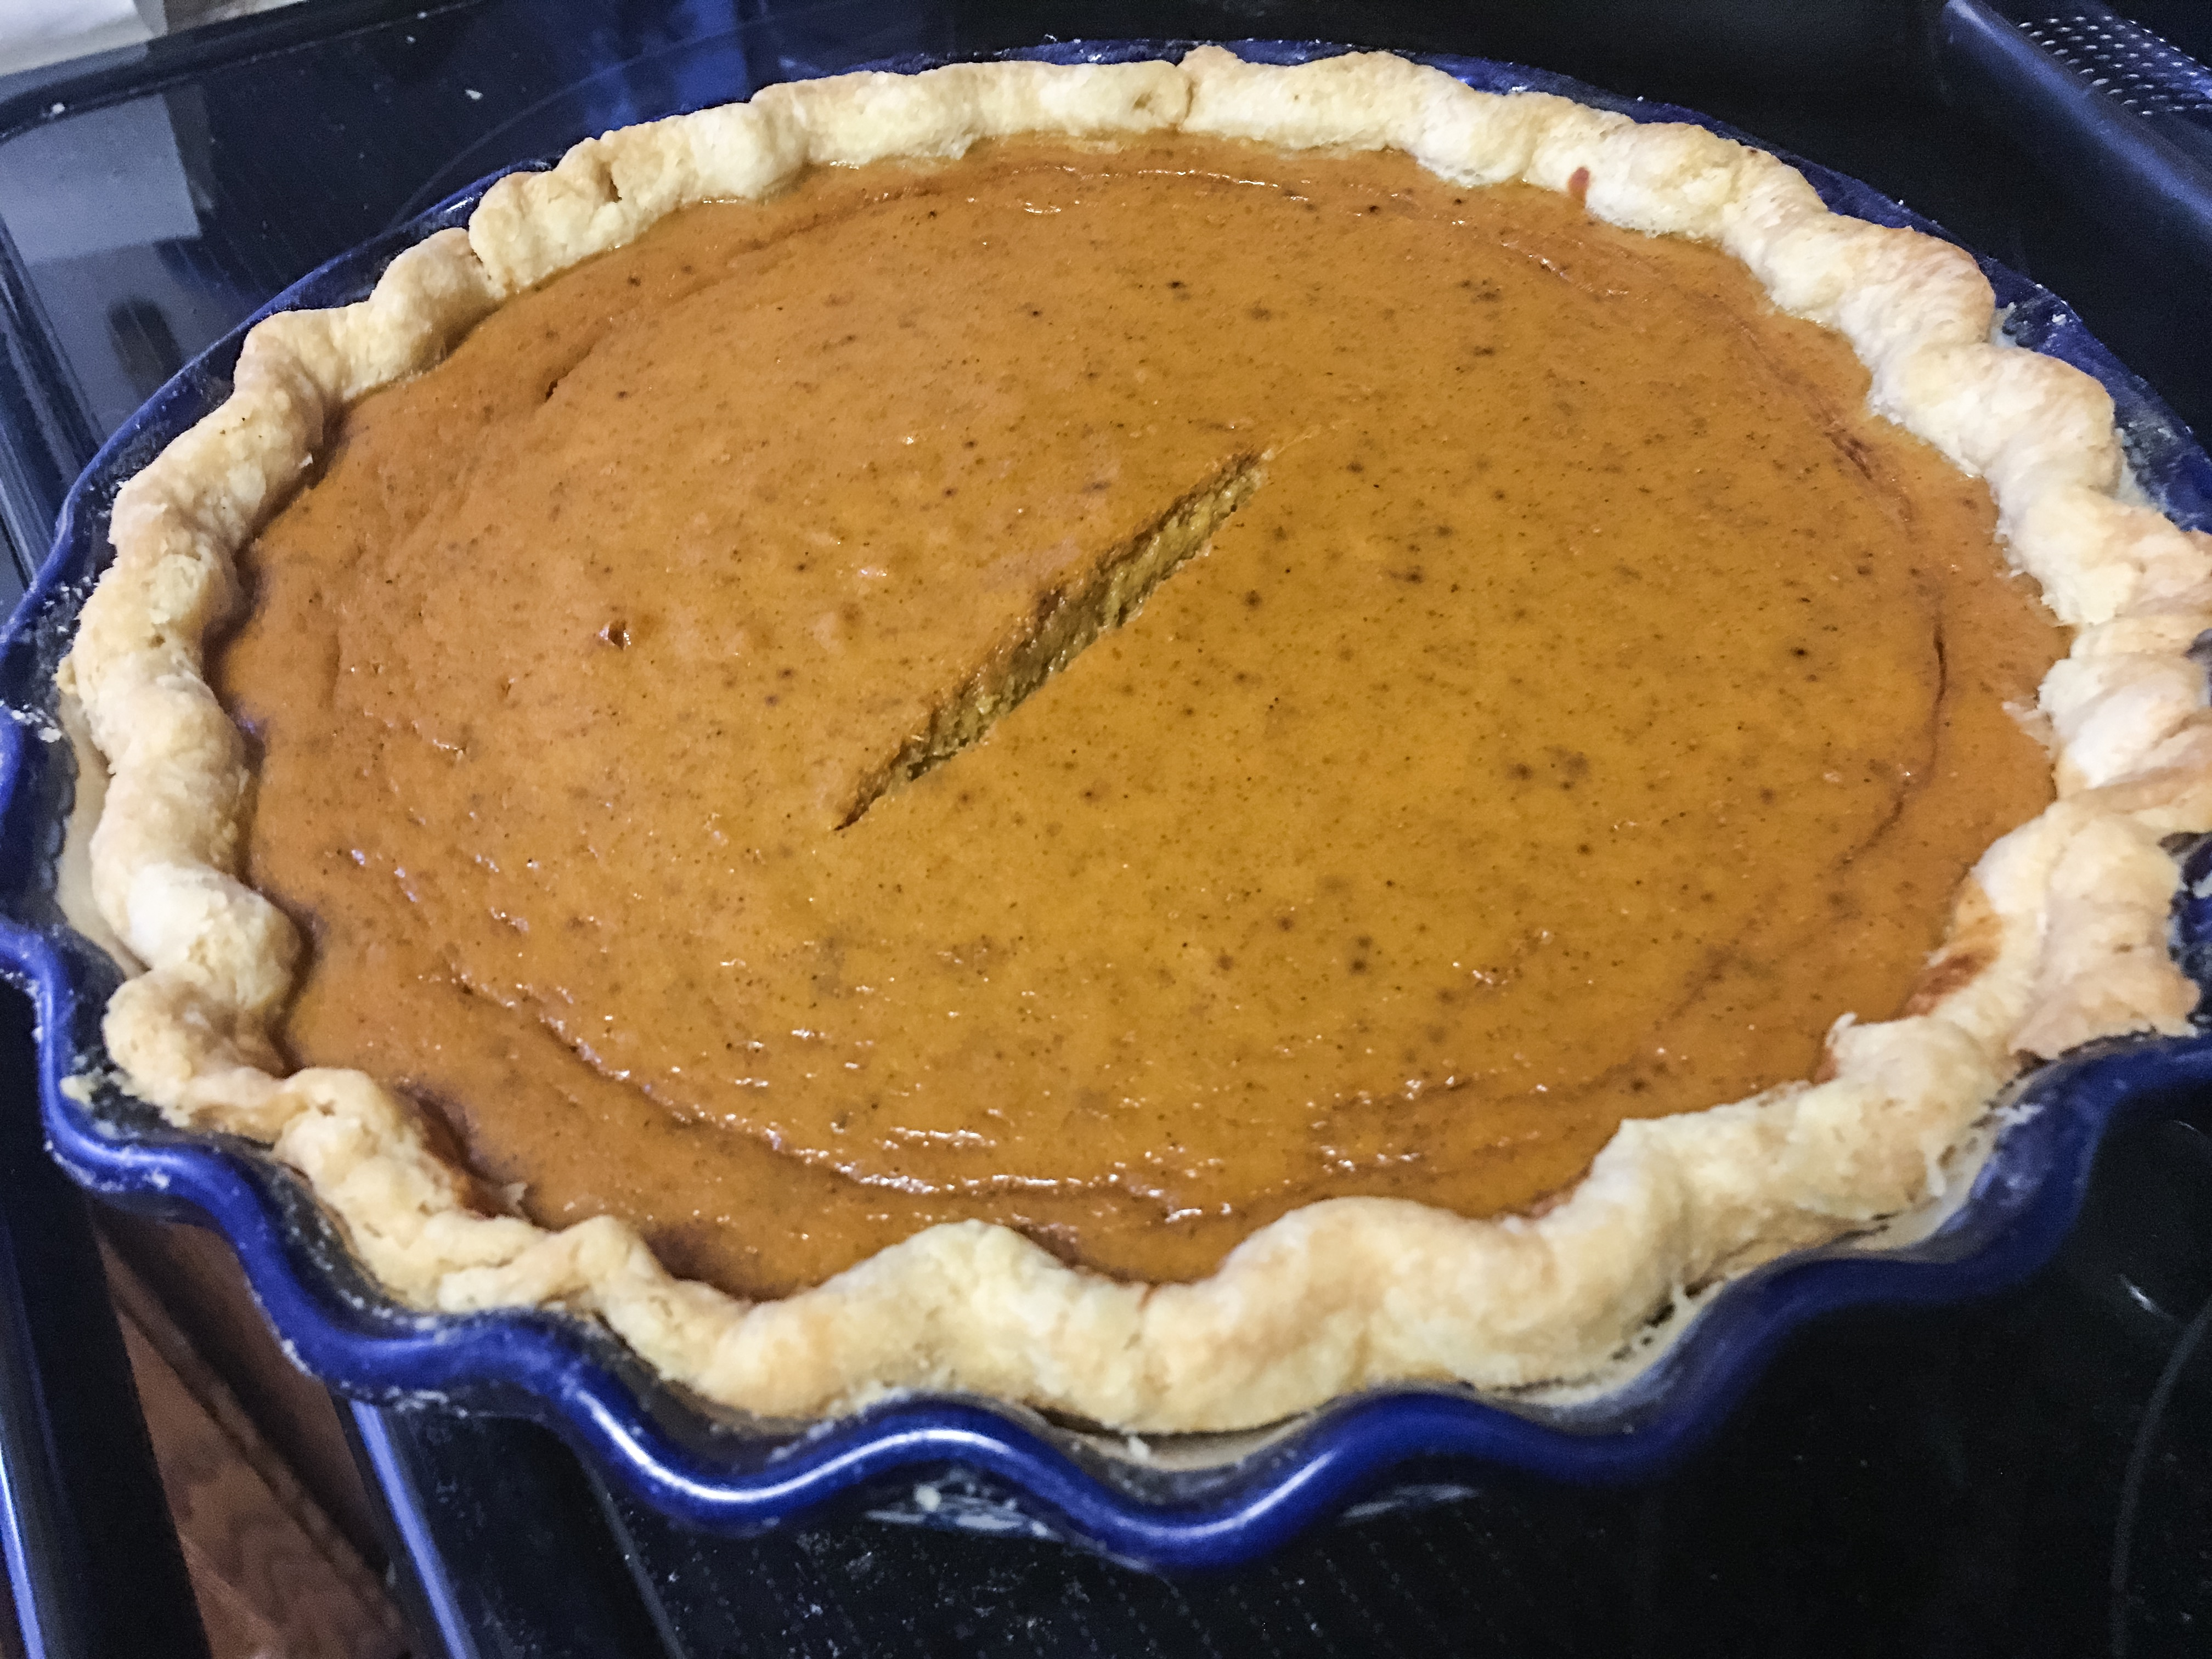 Marie Callender's pumpkin pie recipe just out of the oven